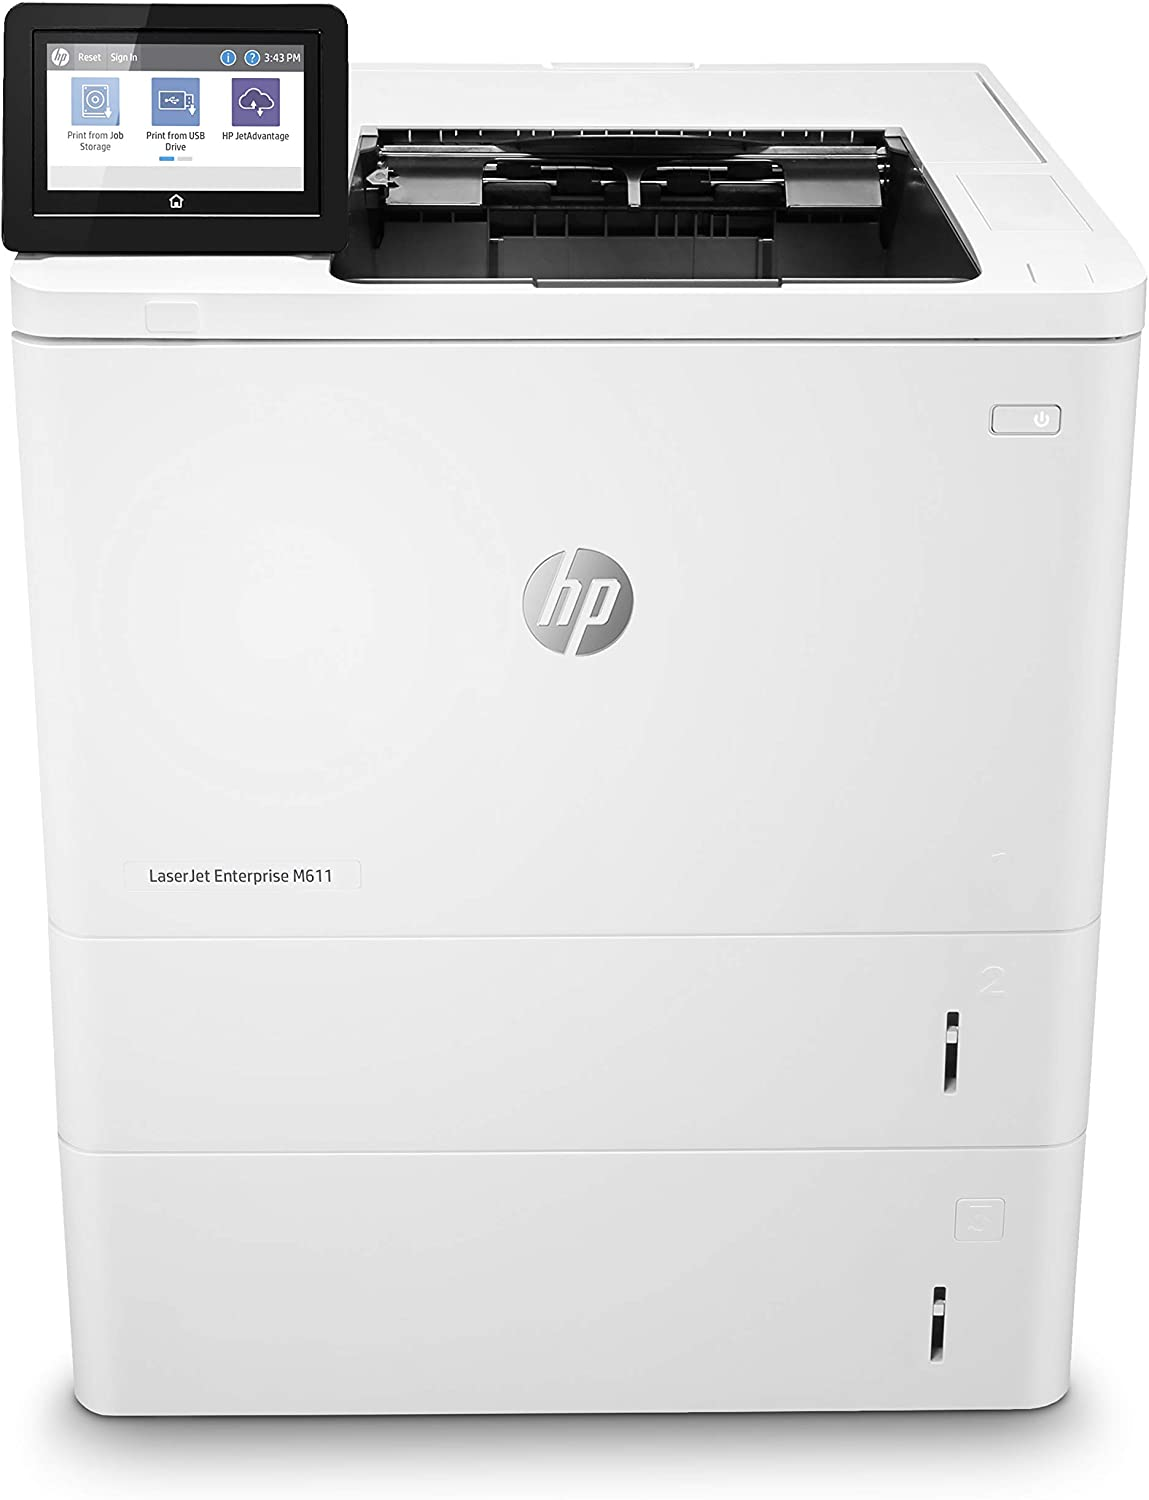 HP Laserjet Enterprise M611dn Monochrome Duplex Printer (7PS84A), White, Standard